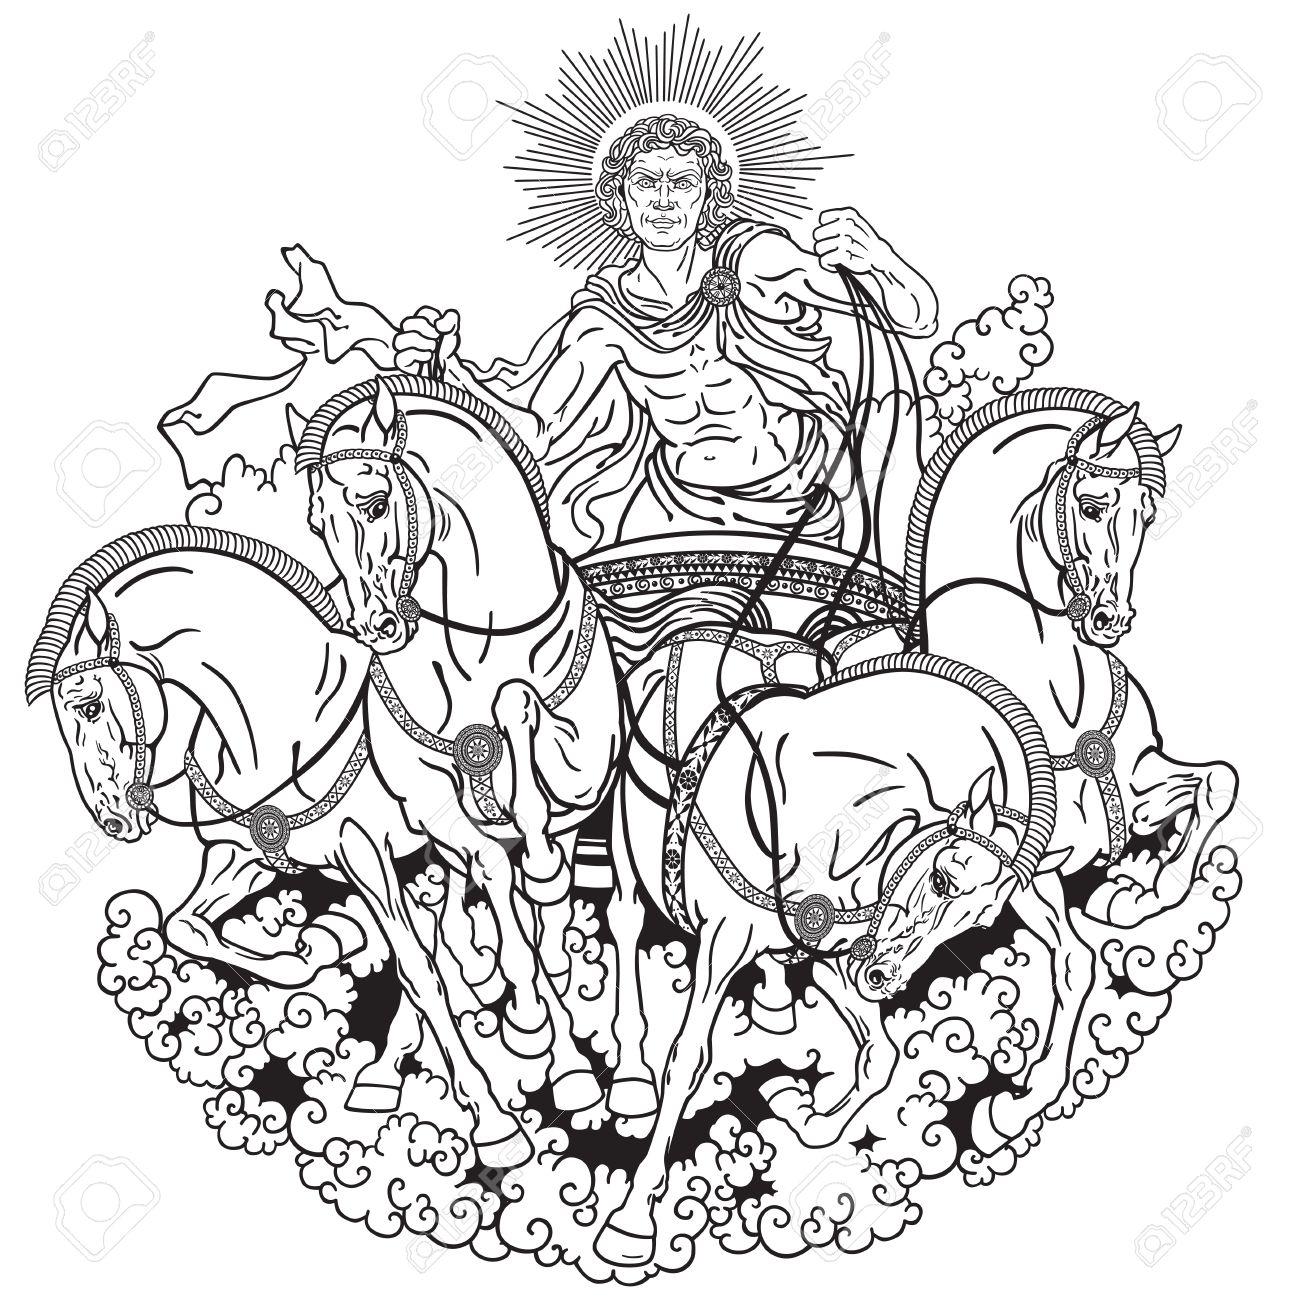 1300x1300 Helios Personification Of The Sun Driving A Chariot Drawn By